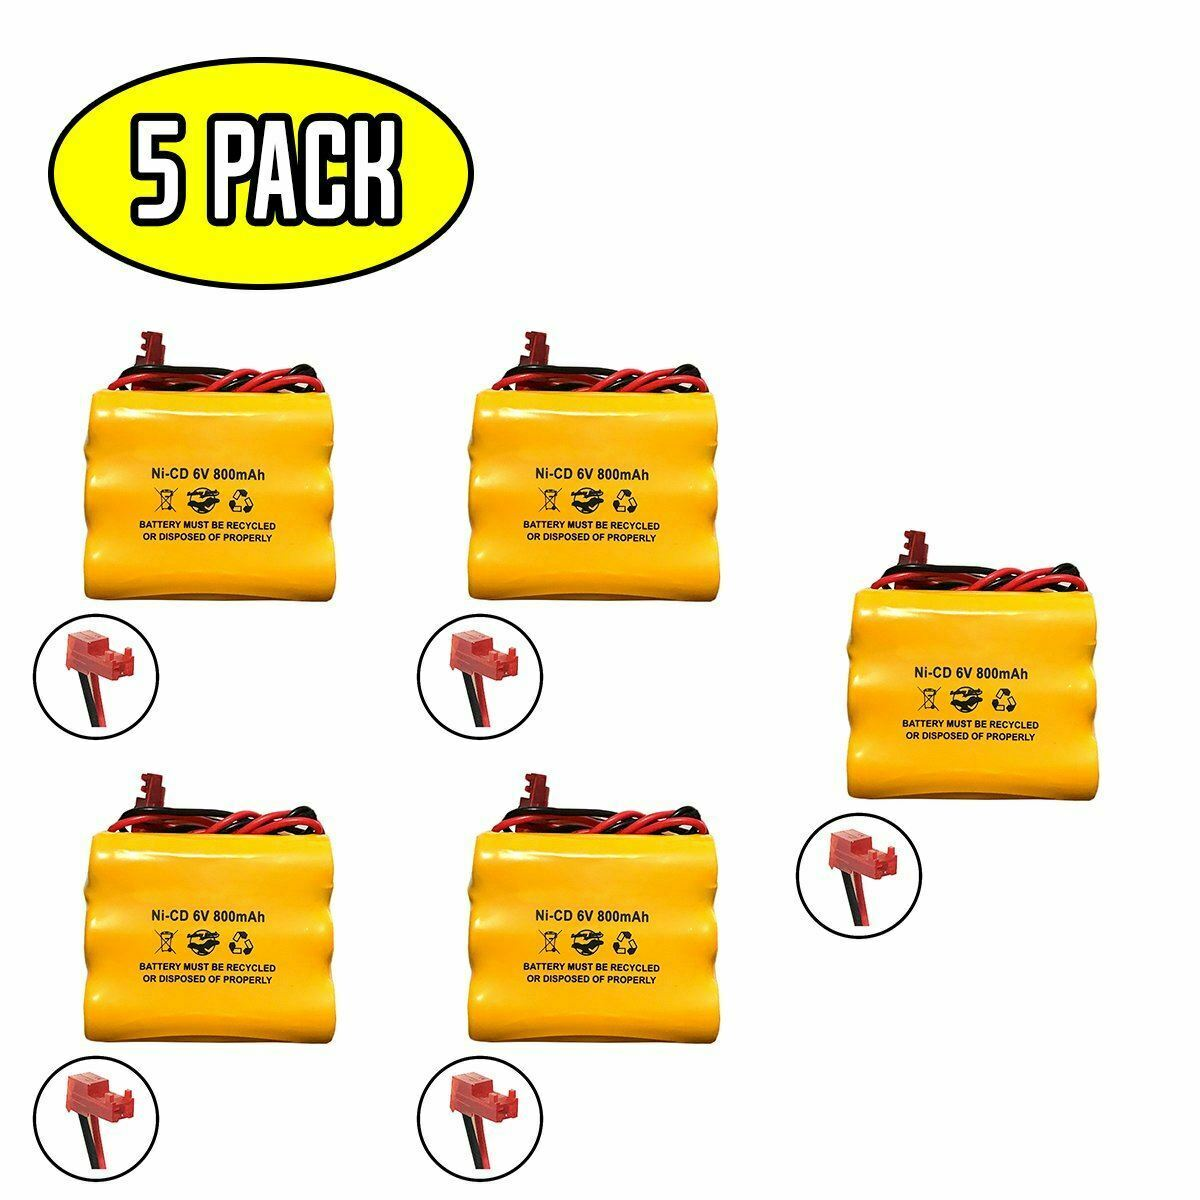 (5 pack) 6v 800mAh Ni-CD Battery Pack Replacement for Emergency / Exit Light